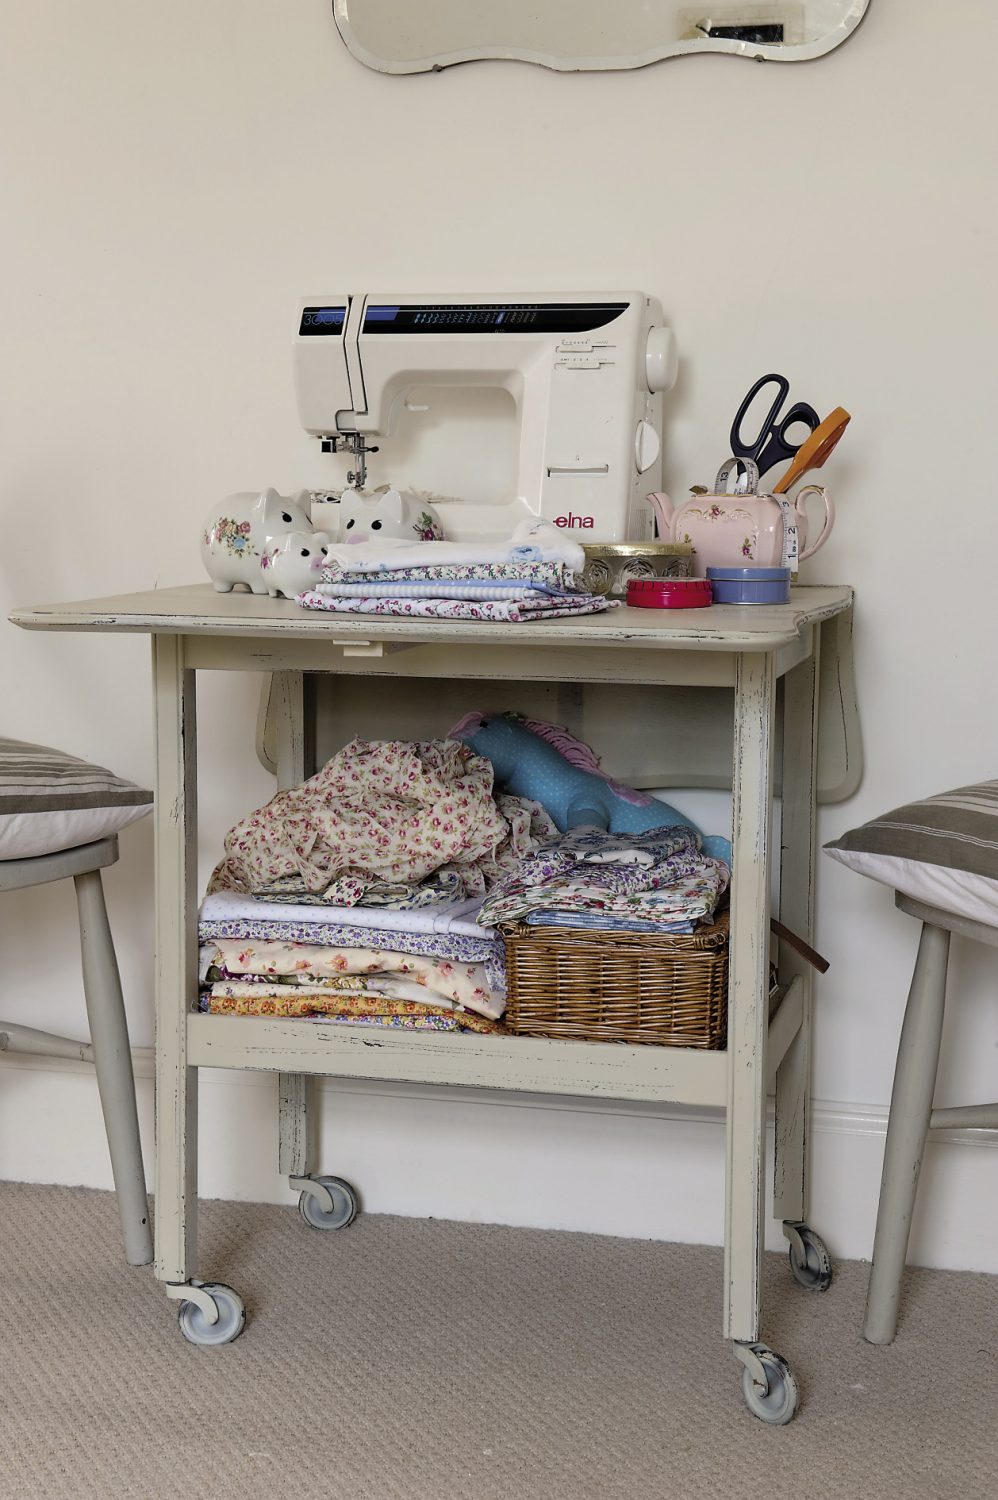 Piles of neatly-folded fabric beneath Anastasia's sewing machine await transformation into bunting